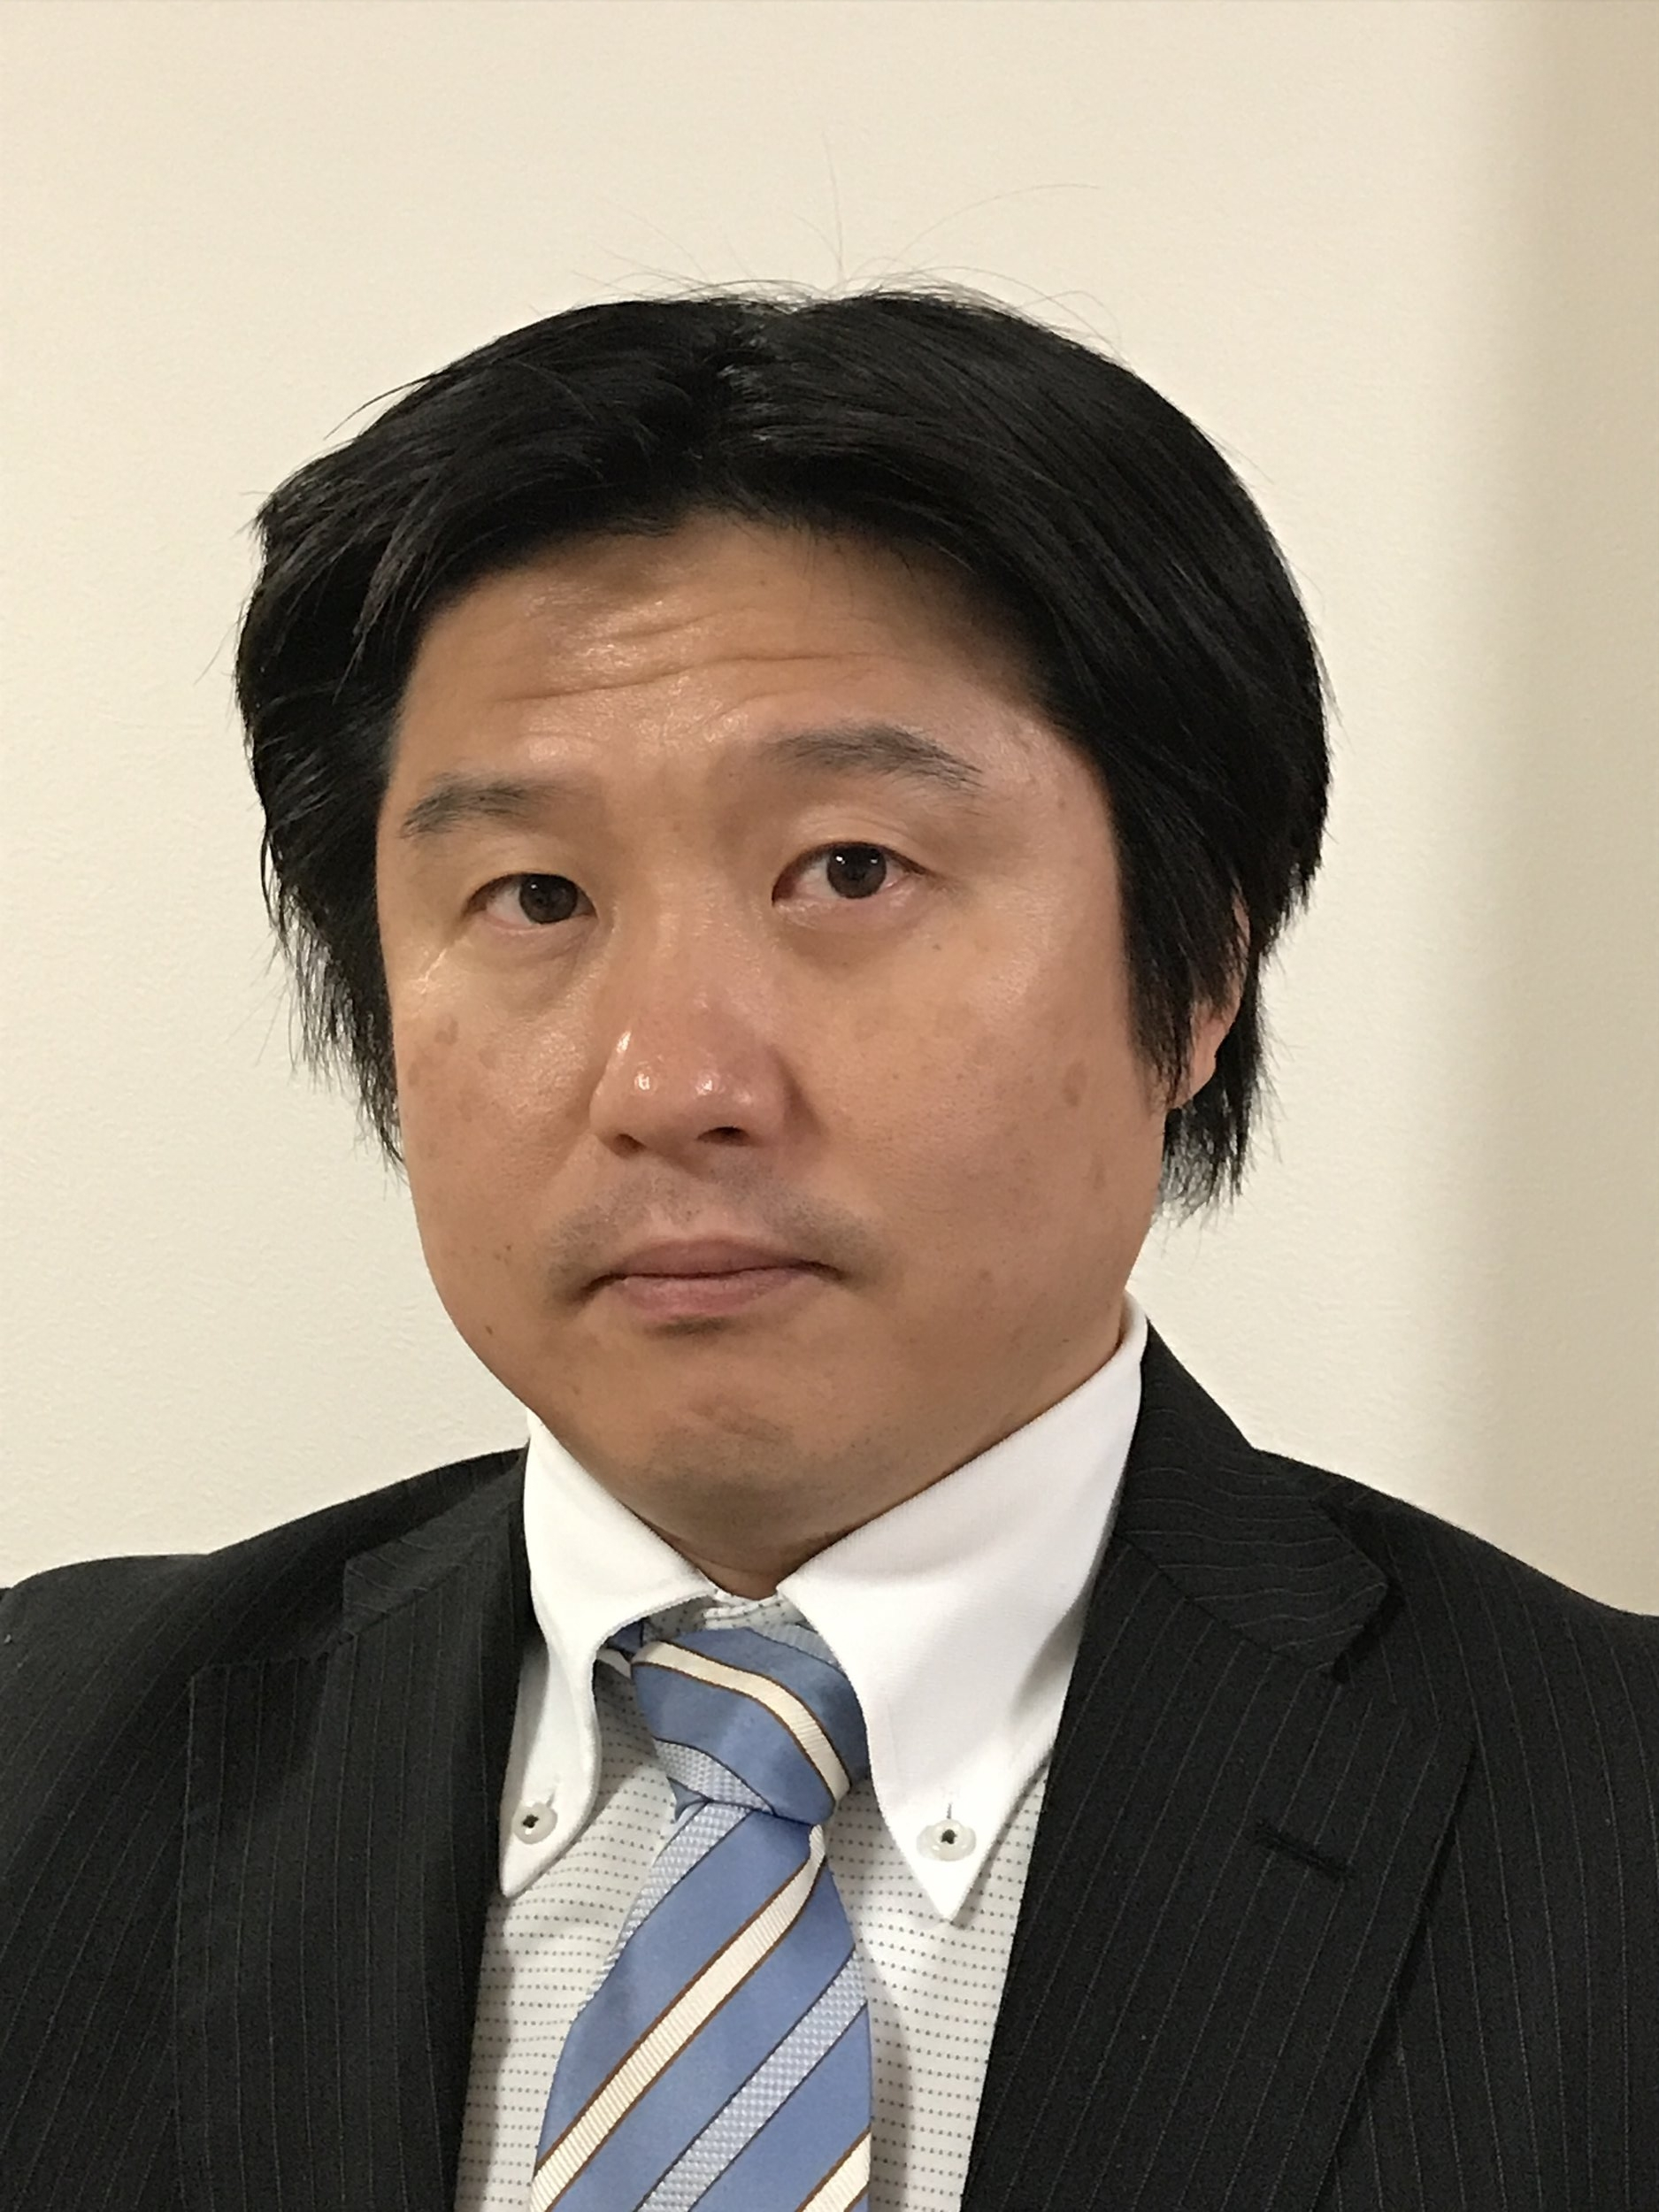 Takahisa Matsuda, PhD   Email Taka   2016- Present: Sr. Manager, Medical Affairs, Alexion Pharma (Japan) 2008- 2016 Scientist/Principal Scientist, Takeda Pharmaceutical Company (Japan) 2005-2008            Postdoctoral Fellow, UMDNJ 2002-2005            PhD, Osaka University, Osaka, Japan 2000-2002            MS, Osaka University, Japan 1996-2000            BS, Osaka University, Japan  Research Interests:   Mst1, GSK-3